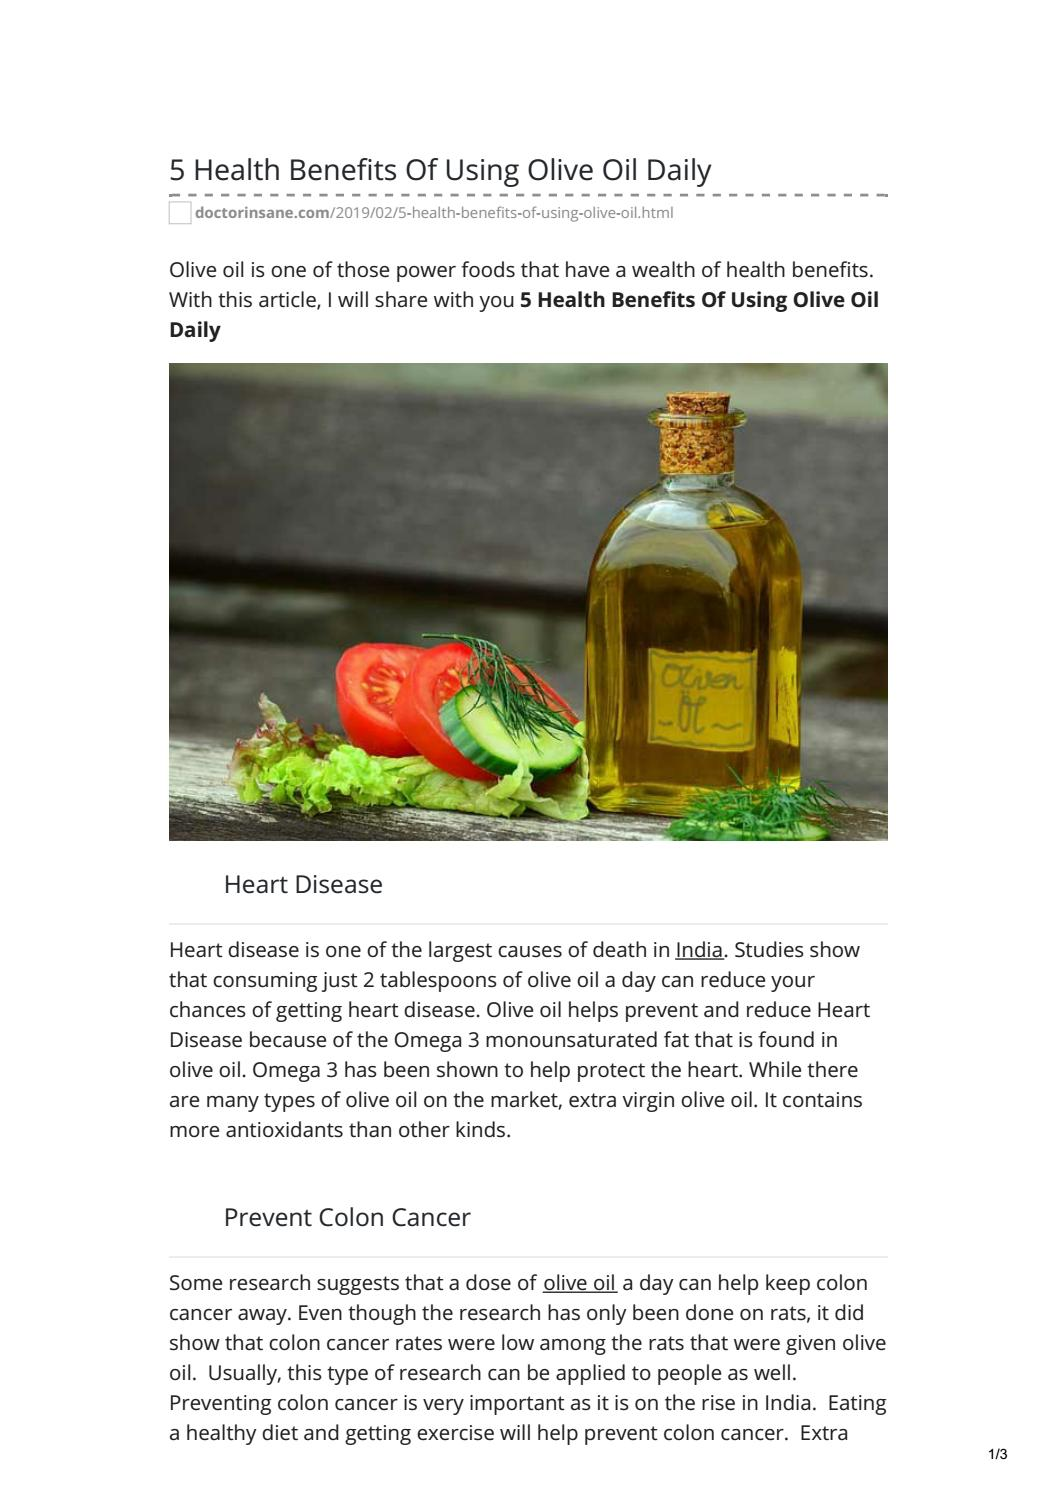 5 Health Benefits Of Using Olive Oil Daily By Dr Mittalkumar Issuu